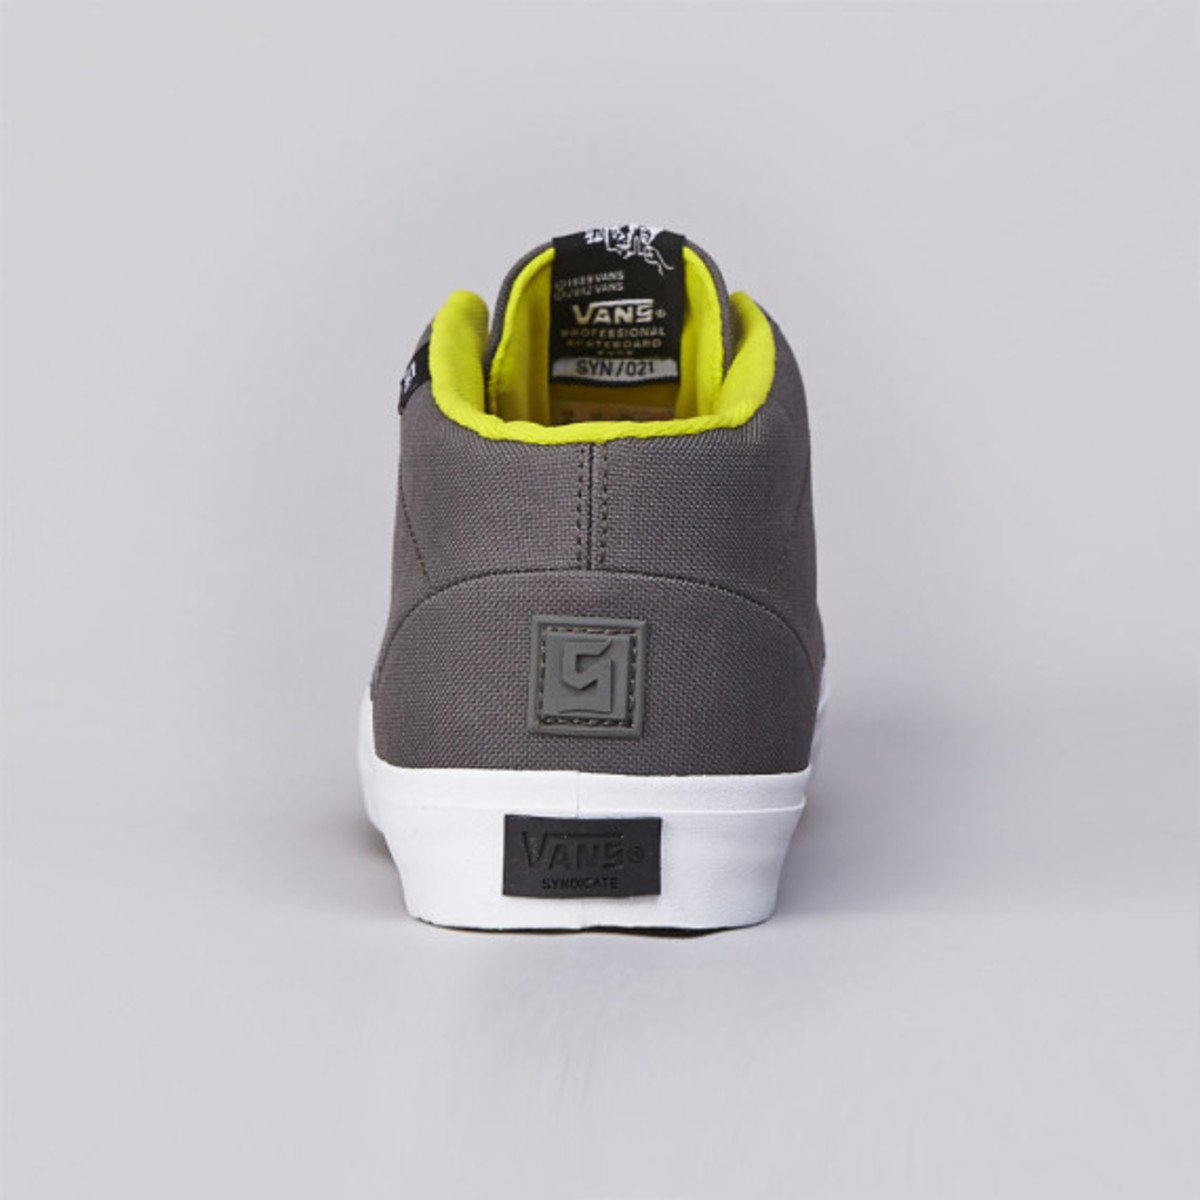 "VANS Syndicate Cab Lite ""S"" - June 2013 Releases - 4"